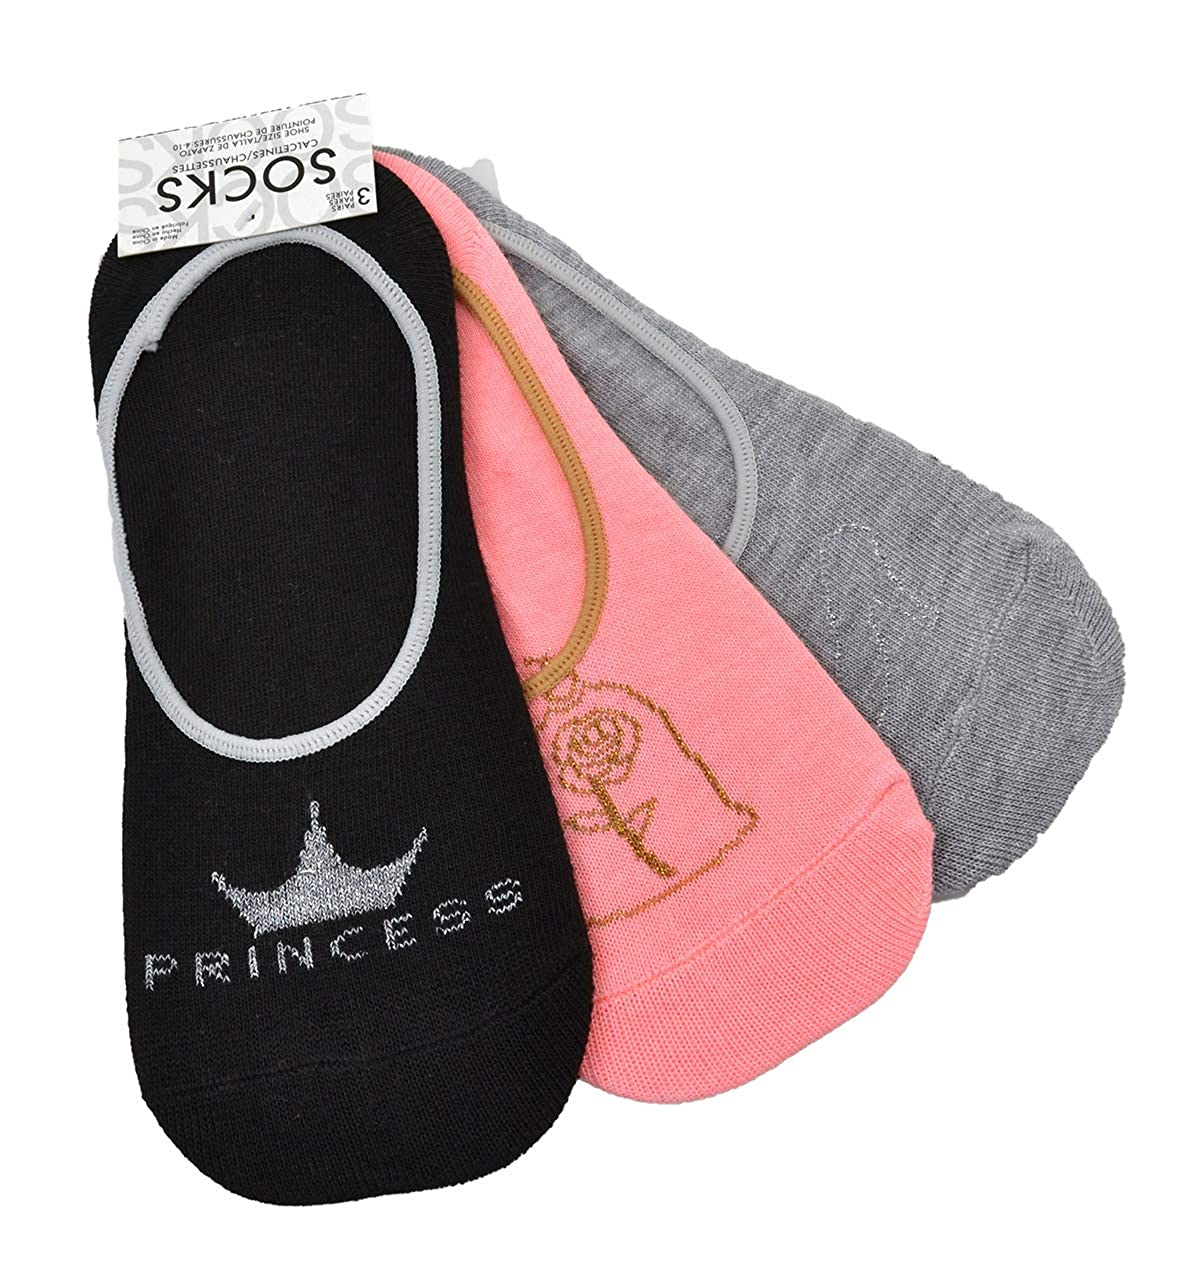 PLANET SOX DISNEY WOMENS 3-PK. PRINCESS PED SOCKS VALUE PACK at Amazon Womens Clothing store: